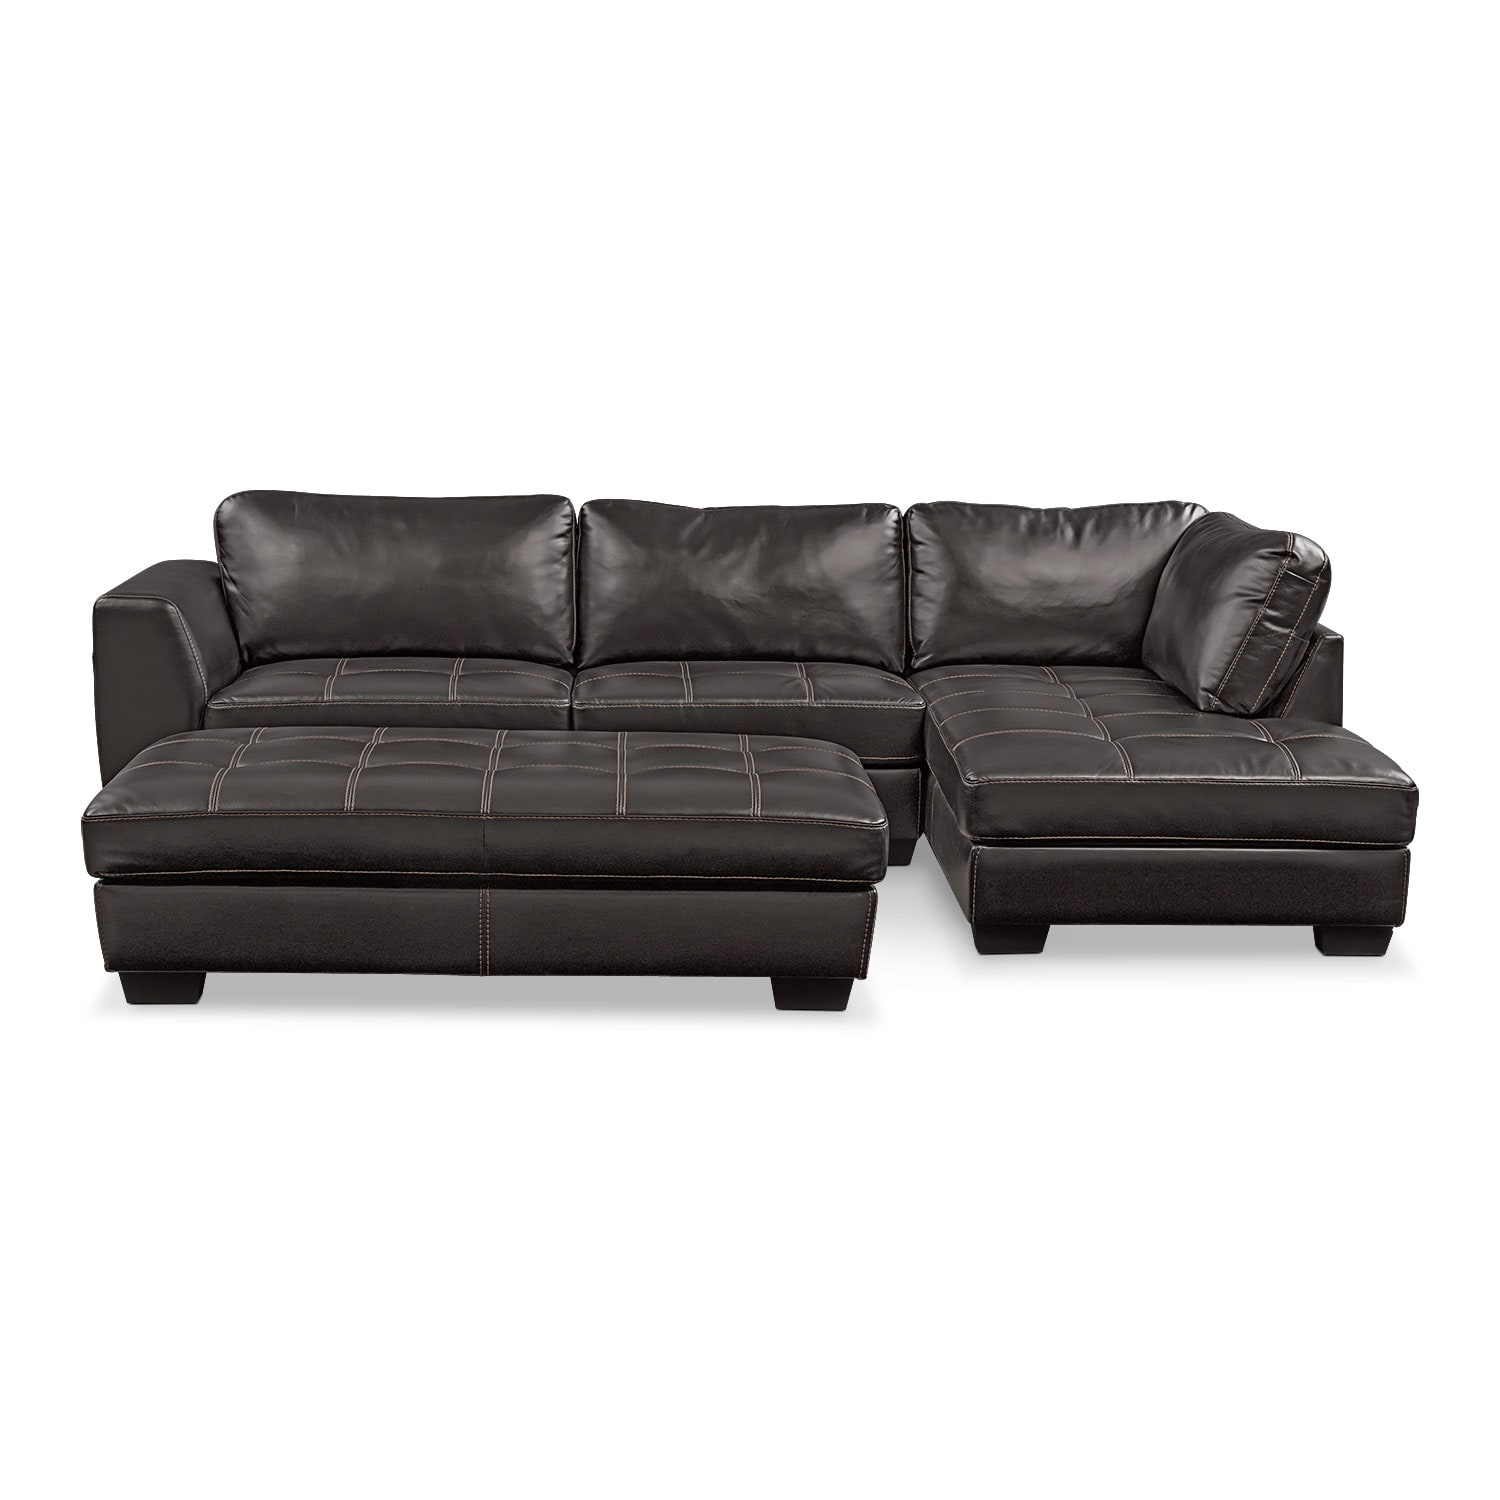 Living Room Furniture - Santana 2-Piece Sectional with Right-Facing Chaise and Cocktail Ottoman Set - Black